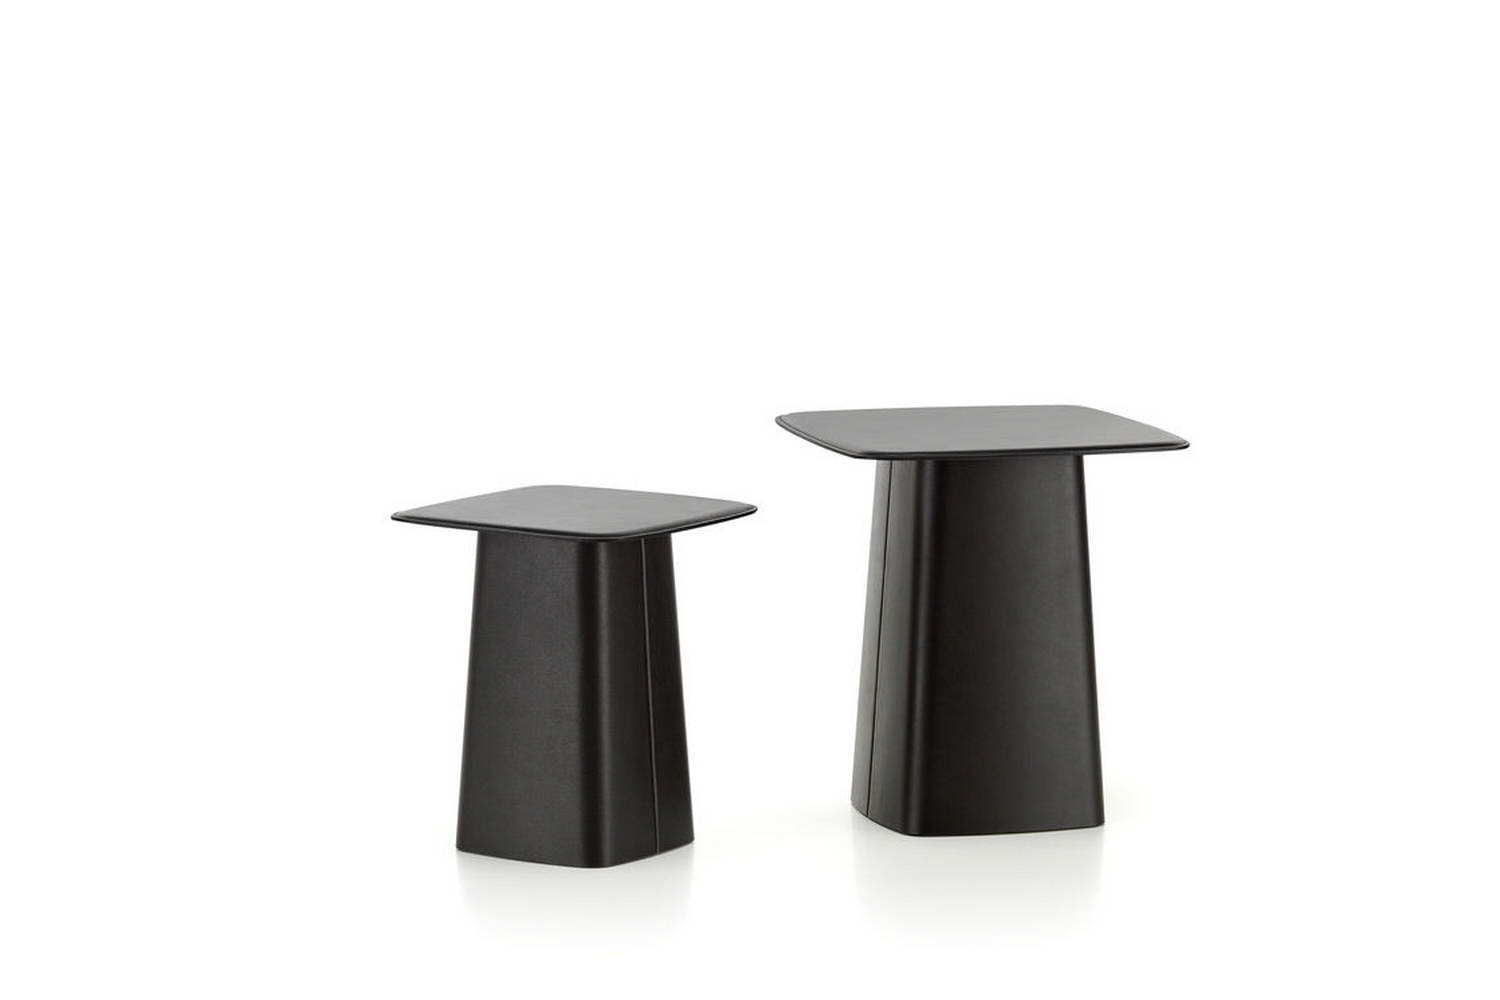 Leather Side Tables by Ronan & Erwan Bouroullec for Vitra